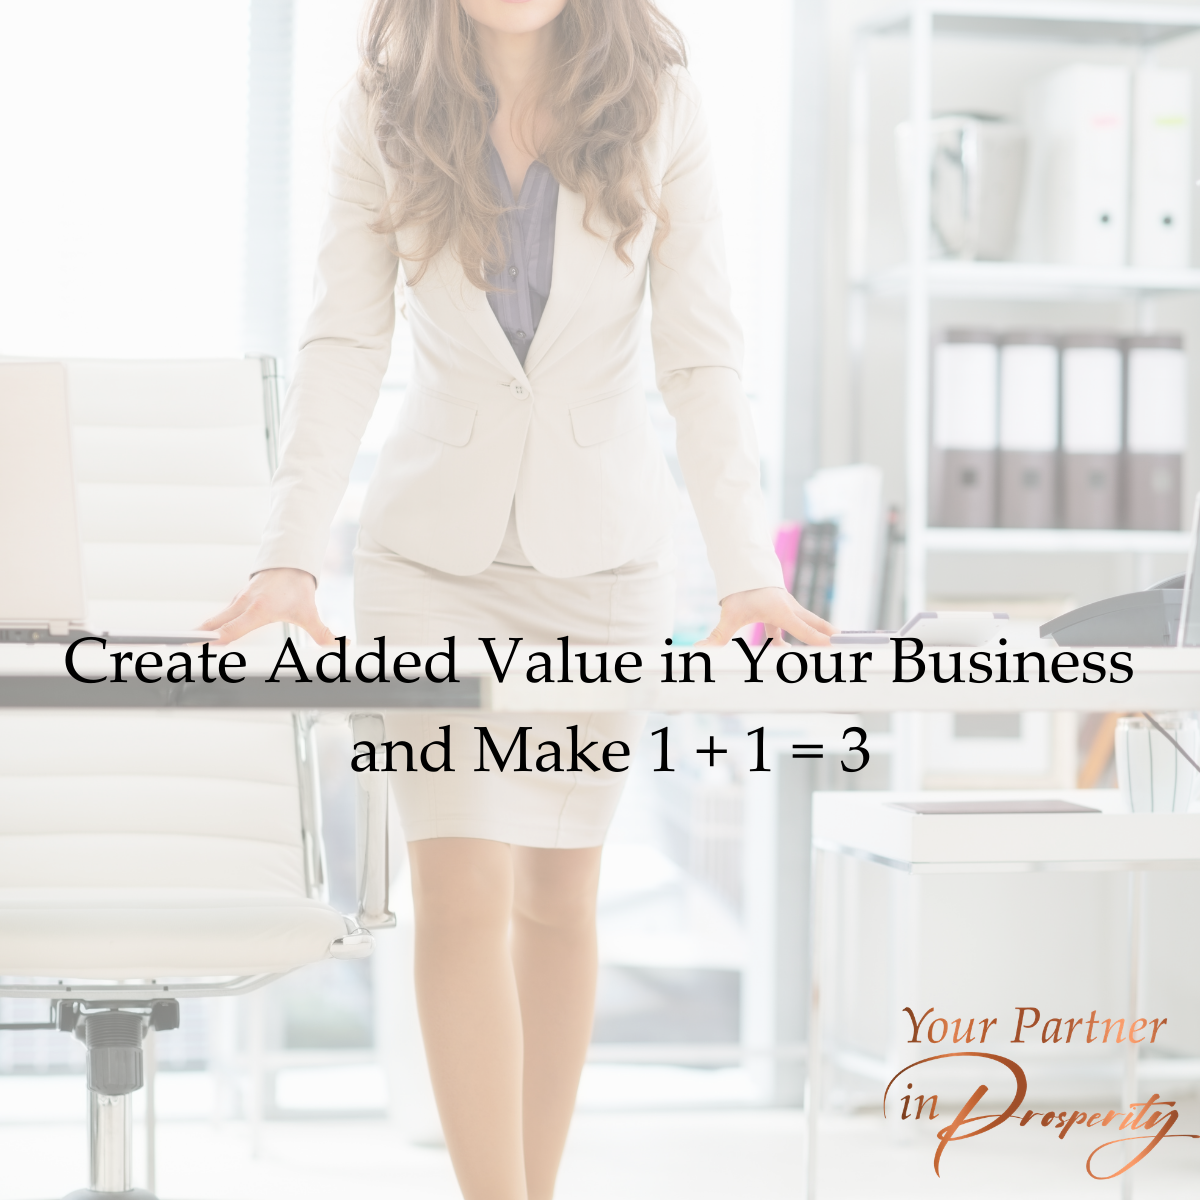 Create Added Value in Your Businessand Make 1 + 1 = 3